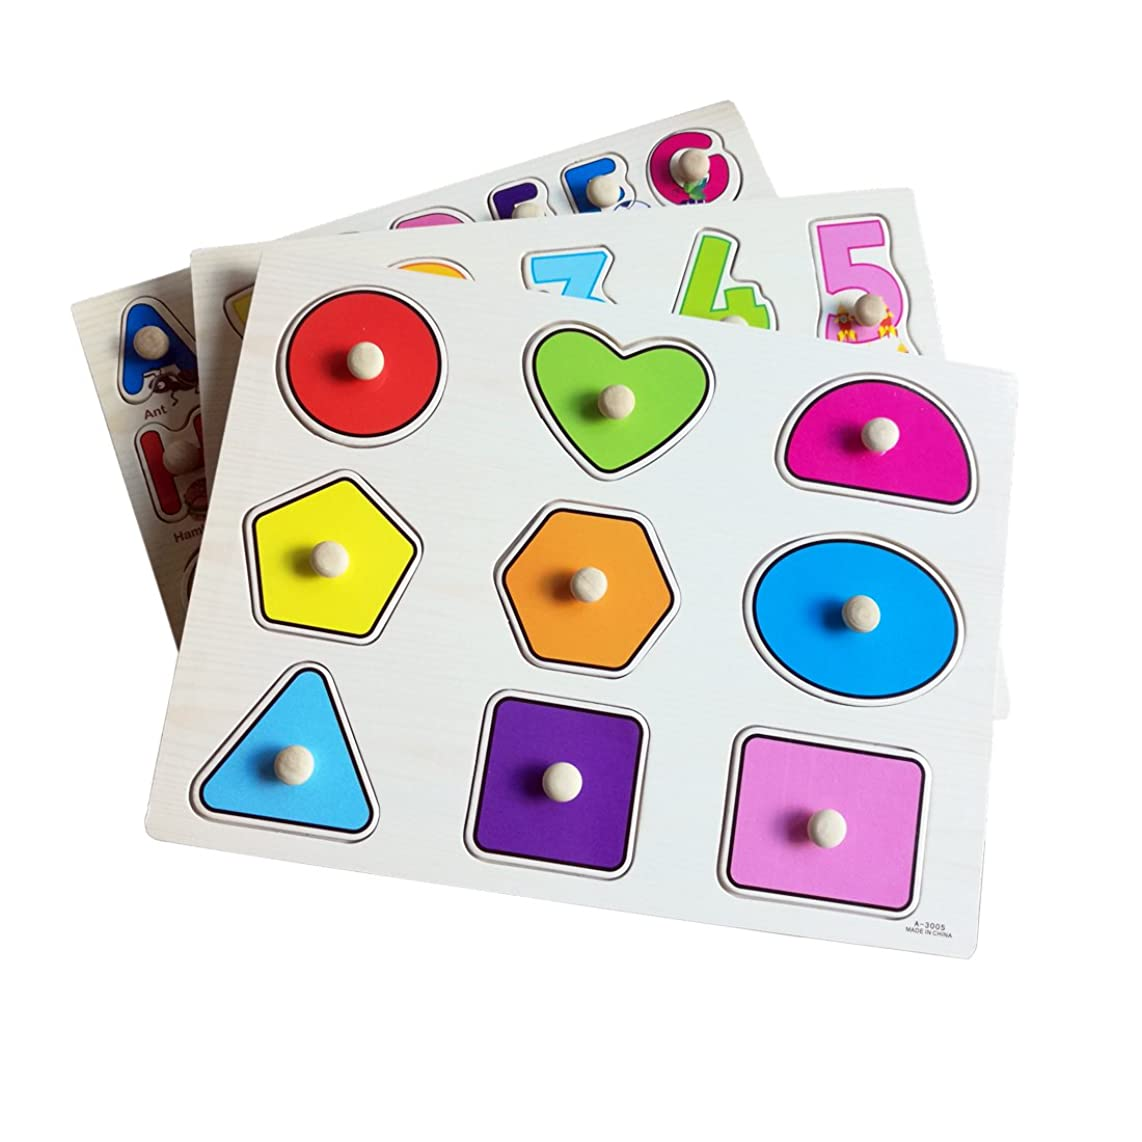 Habudda Wooden Pegged Puzzles For Toddlers Chunky Puzzles With Knobs Baby Letter,Alphabet, Number, Shape, Color Recognition (3 PACK)